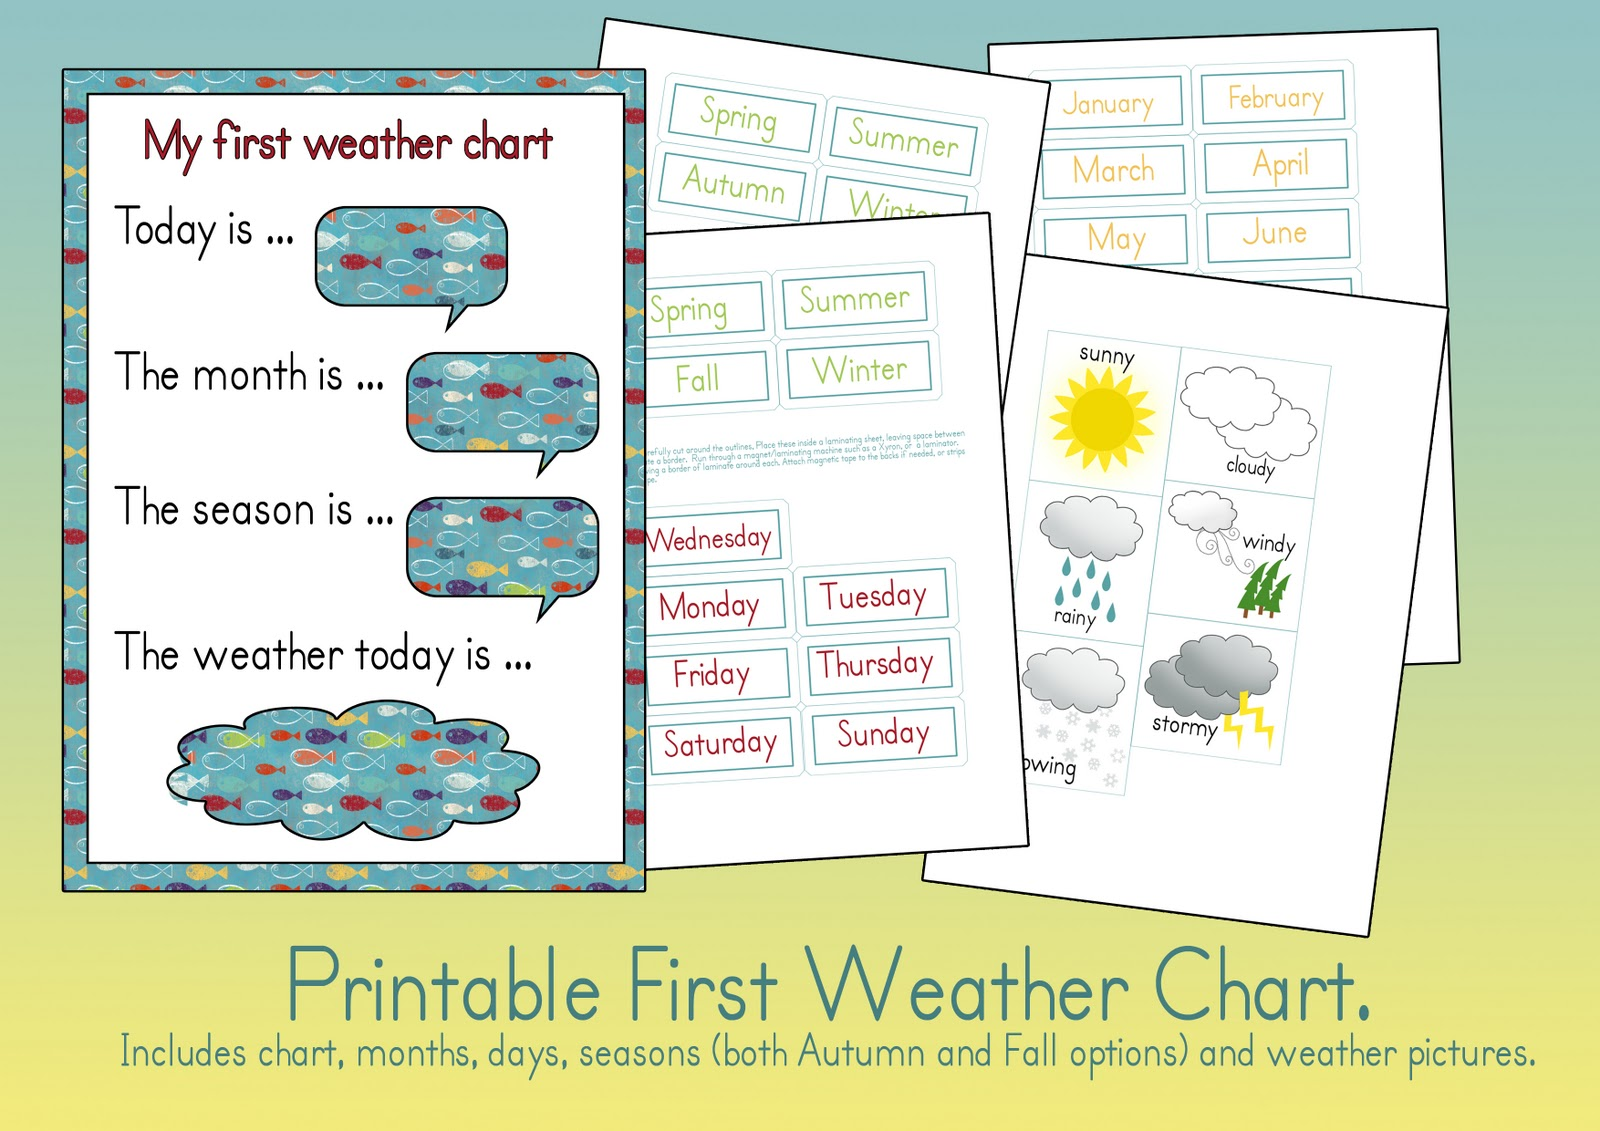 It's just a photo of Unforgettable Printable Weather Charts